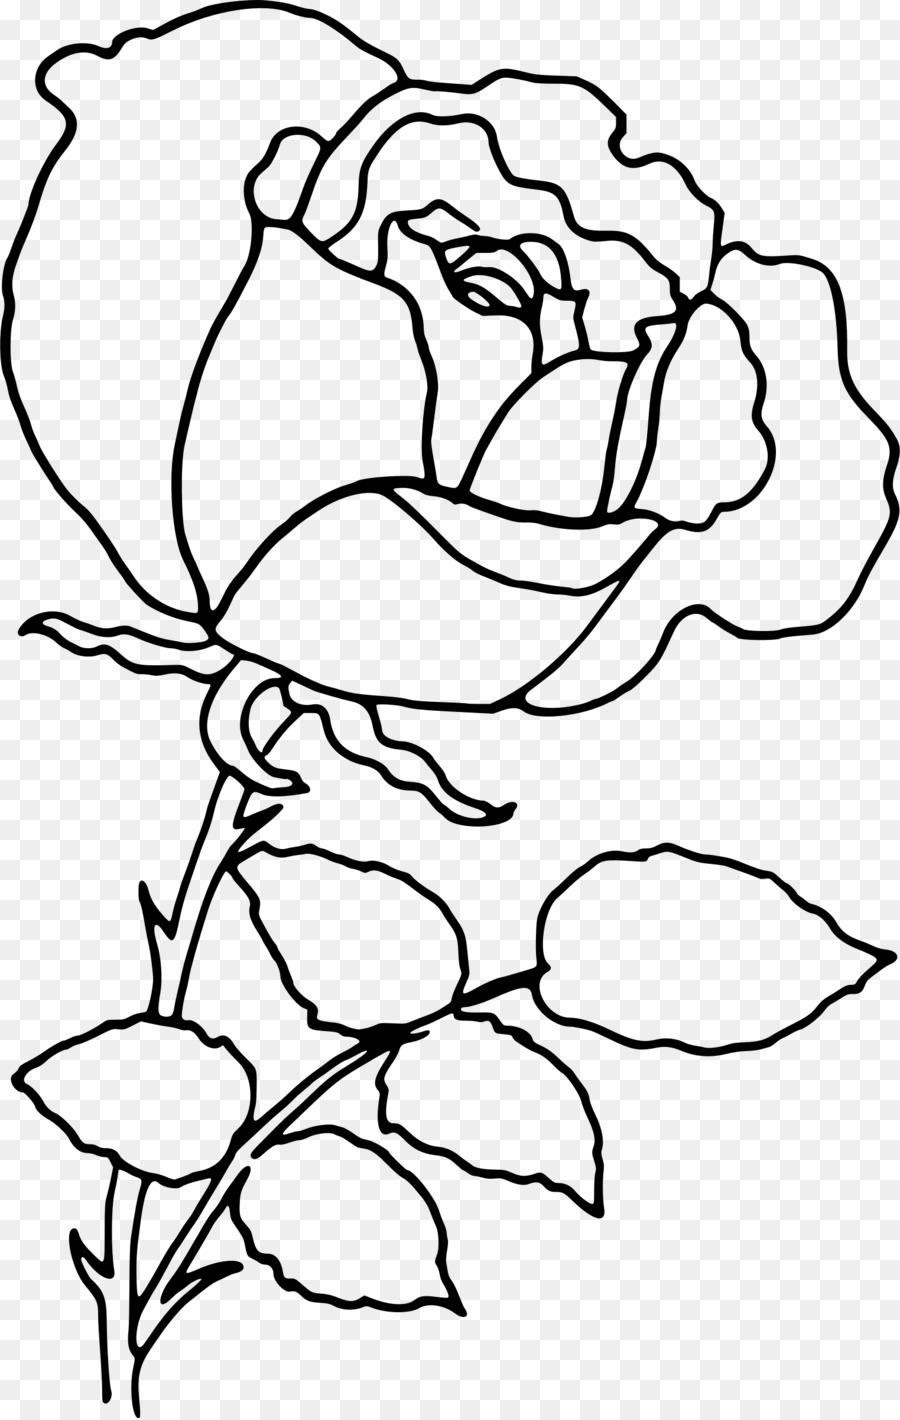 Rose Flower Drawing Clip Art Line Drawing Png Download 1523 2400